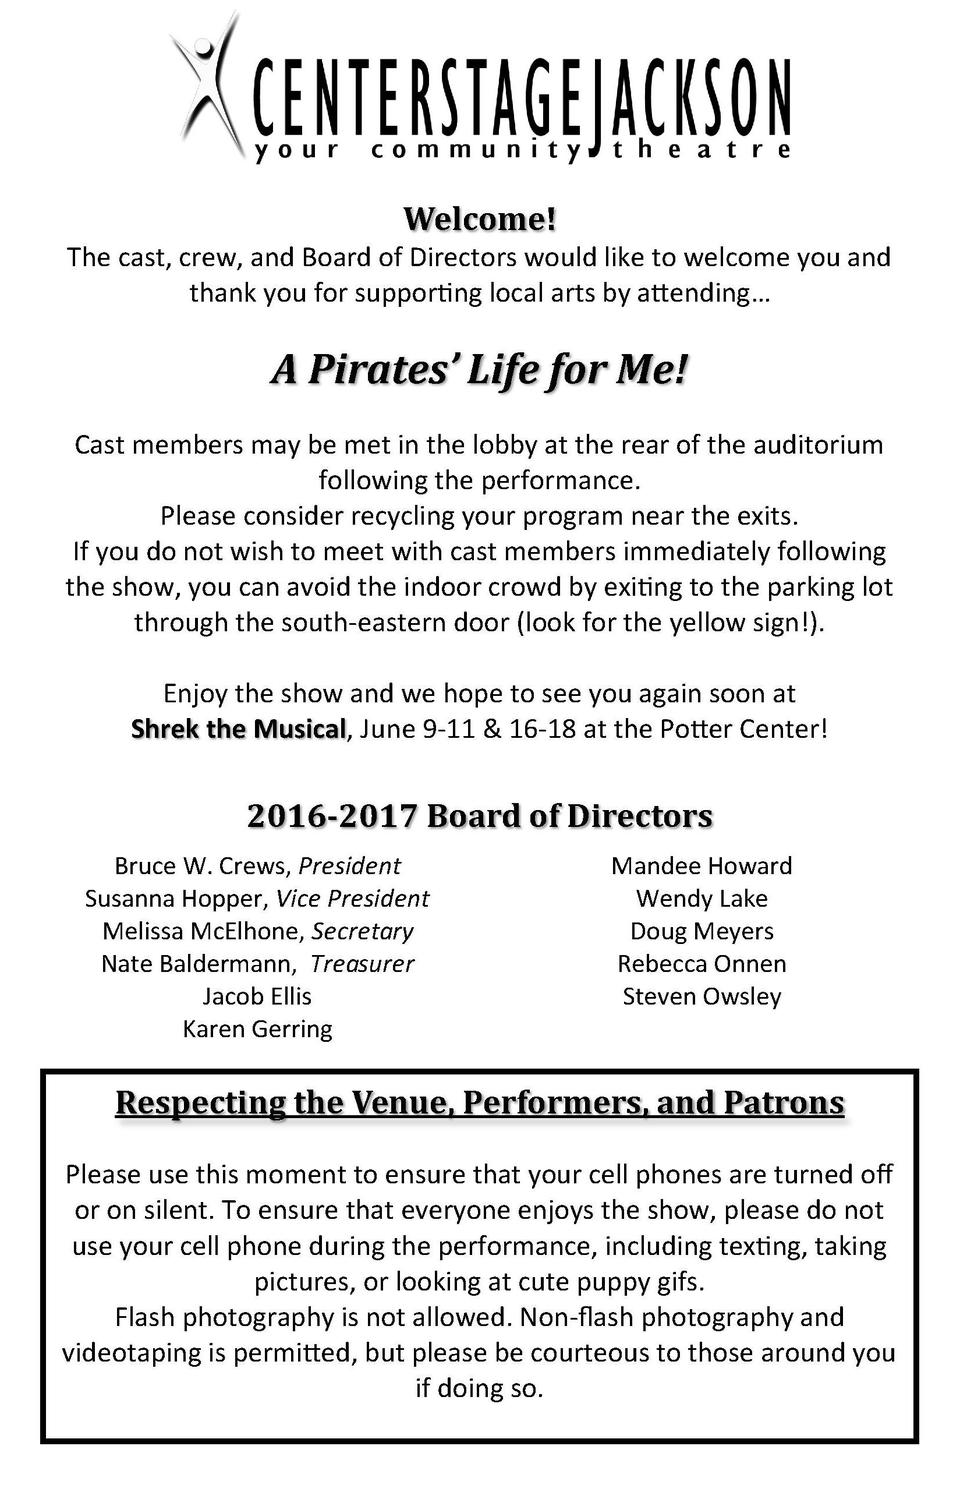 Welcome  The cast, crew, and Board of Directors would like to welcome you and thank you for supporting local arts by atten...